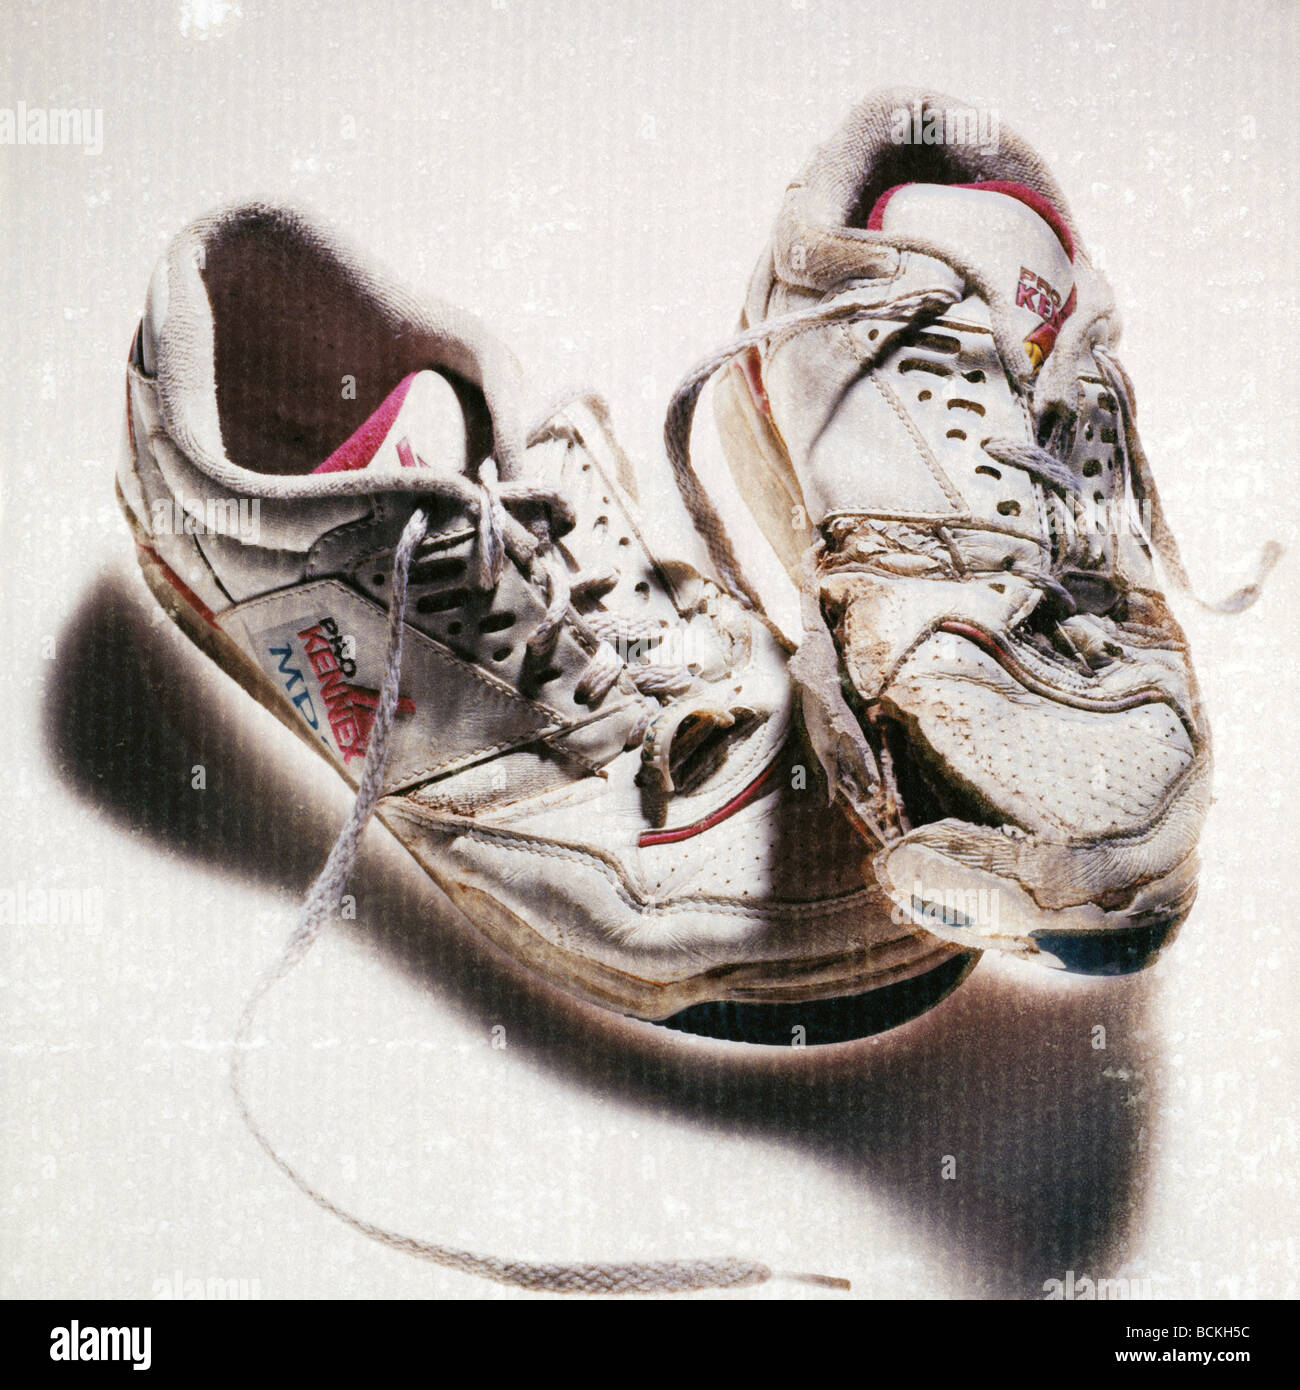 Old Alamy Tennis Images Stock Photosamp; Shoes bgmf6vyY7I